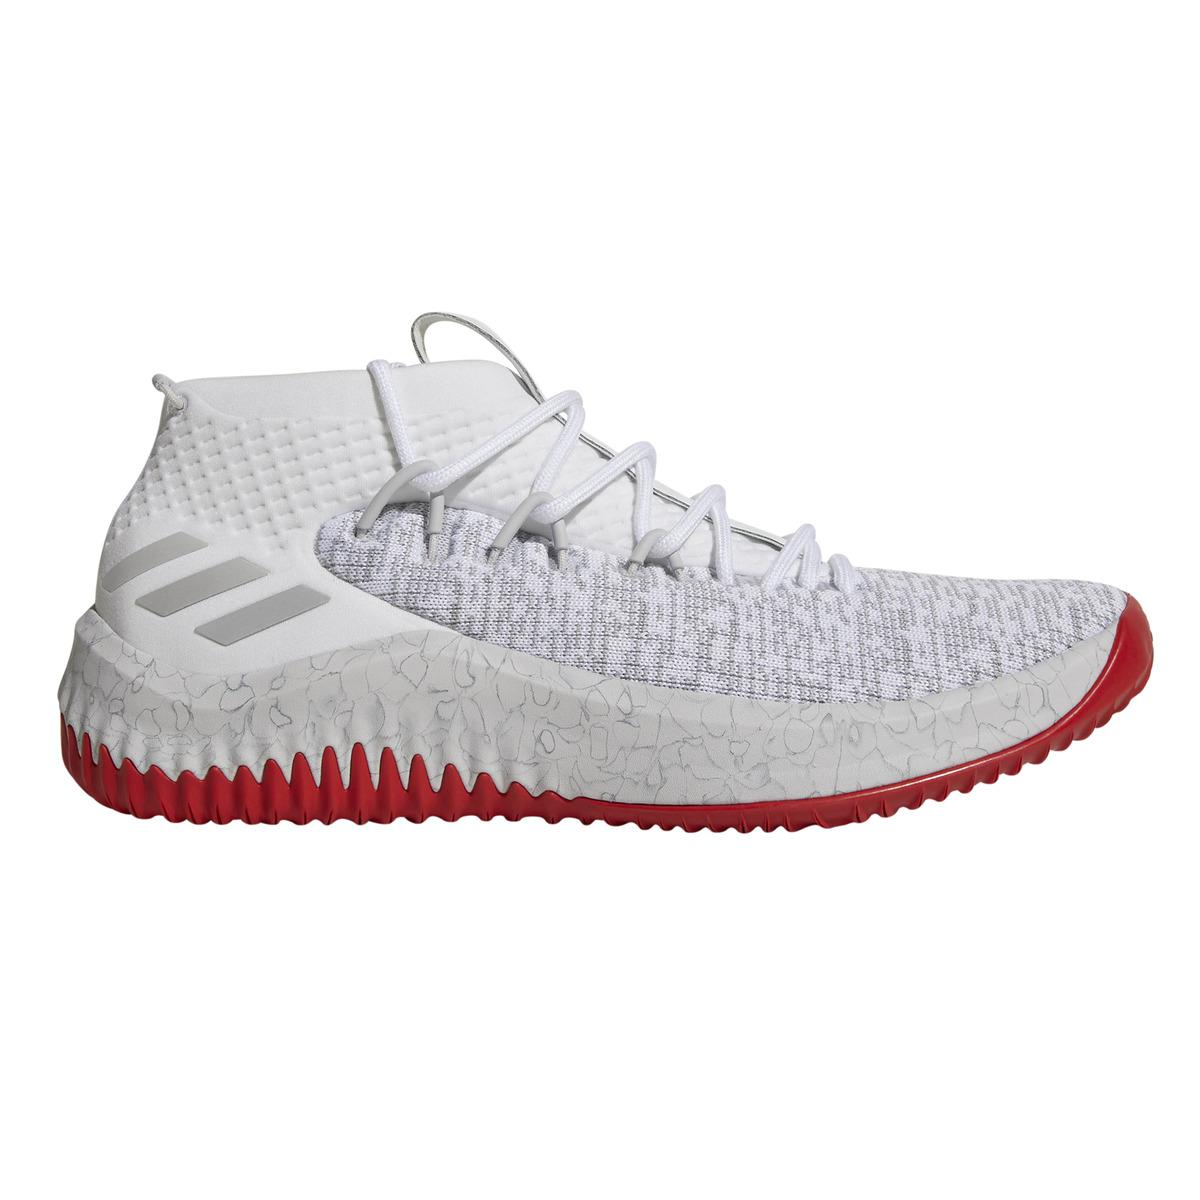 best sneakers 1e842 1fed9 Lyst - Adidas Dame 4 Basketball Shoes in Gray for Men